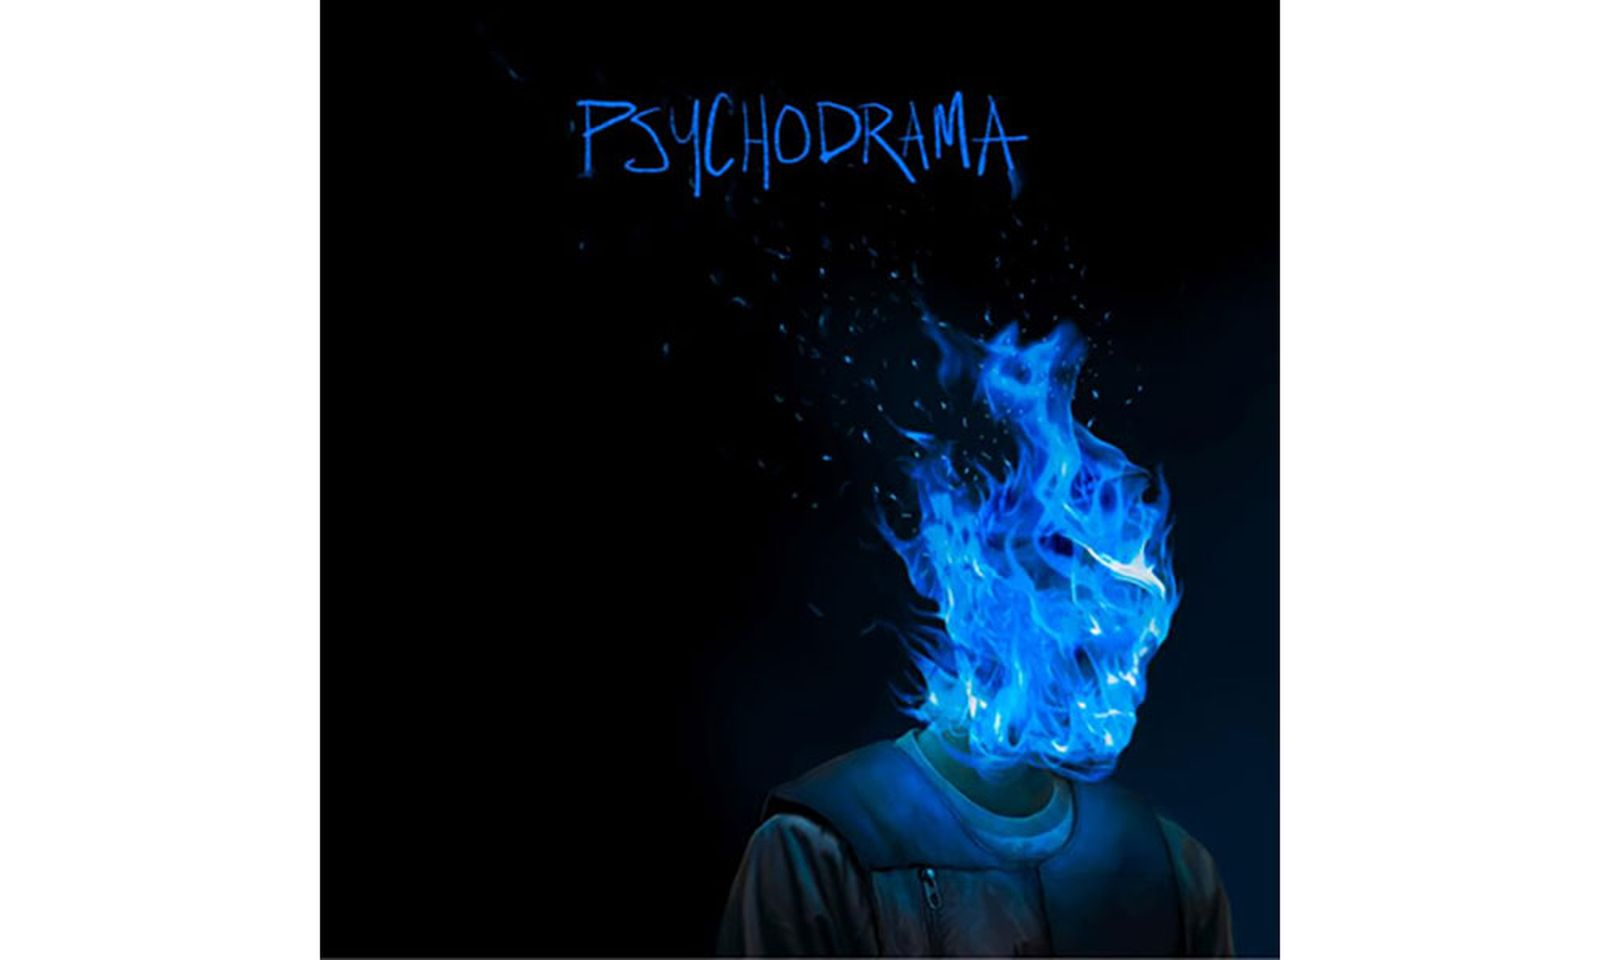 dave psychodrama review